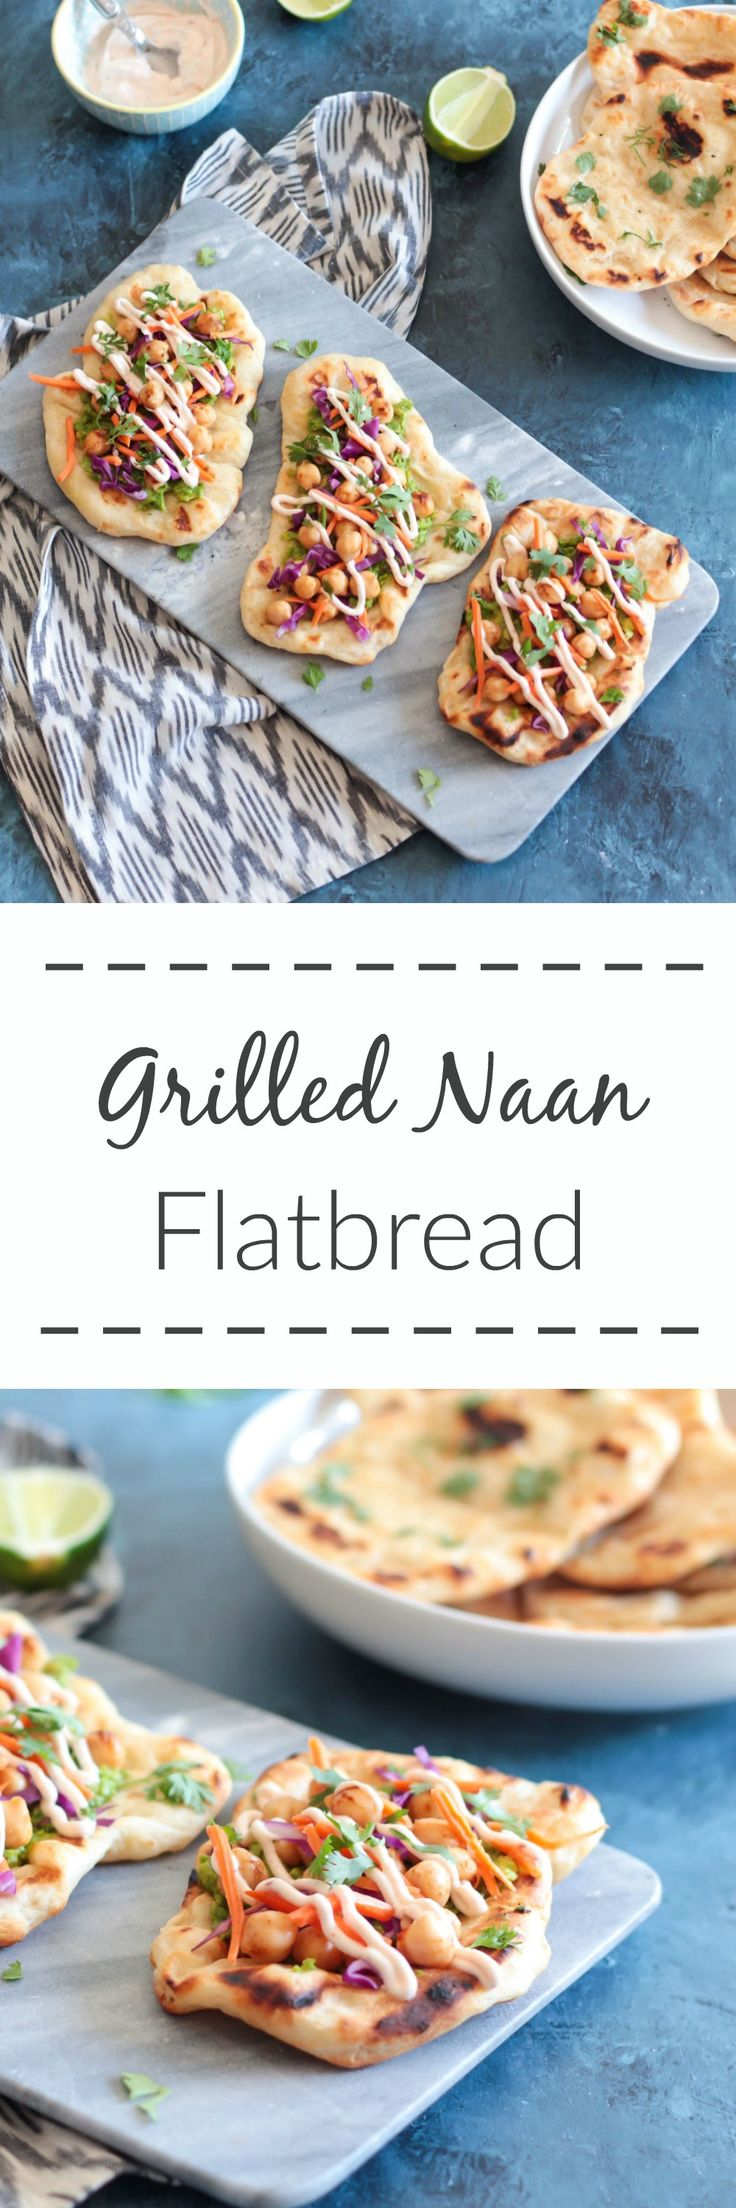 This homemade grilled naan flatbread is SO worth making from scratch, and loaded with yummy toppings like chickpea, avocado and a spicy Harissa yogurt.